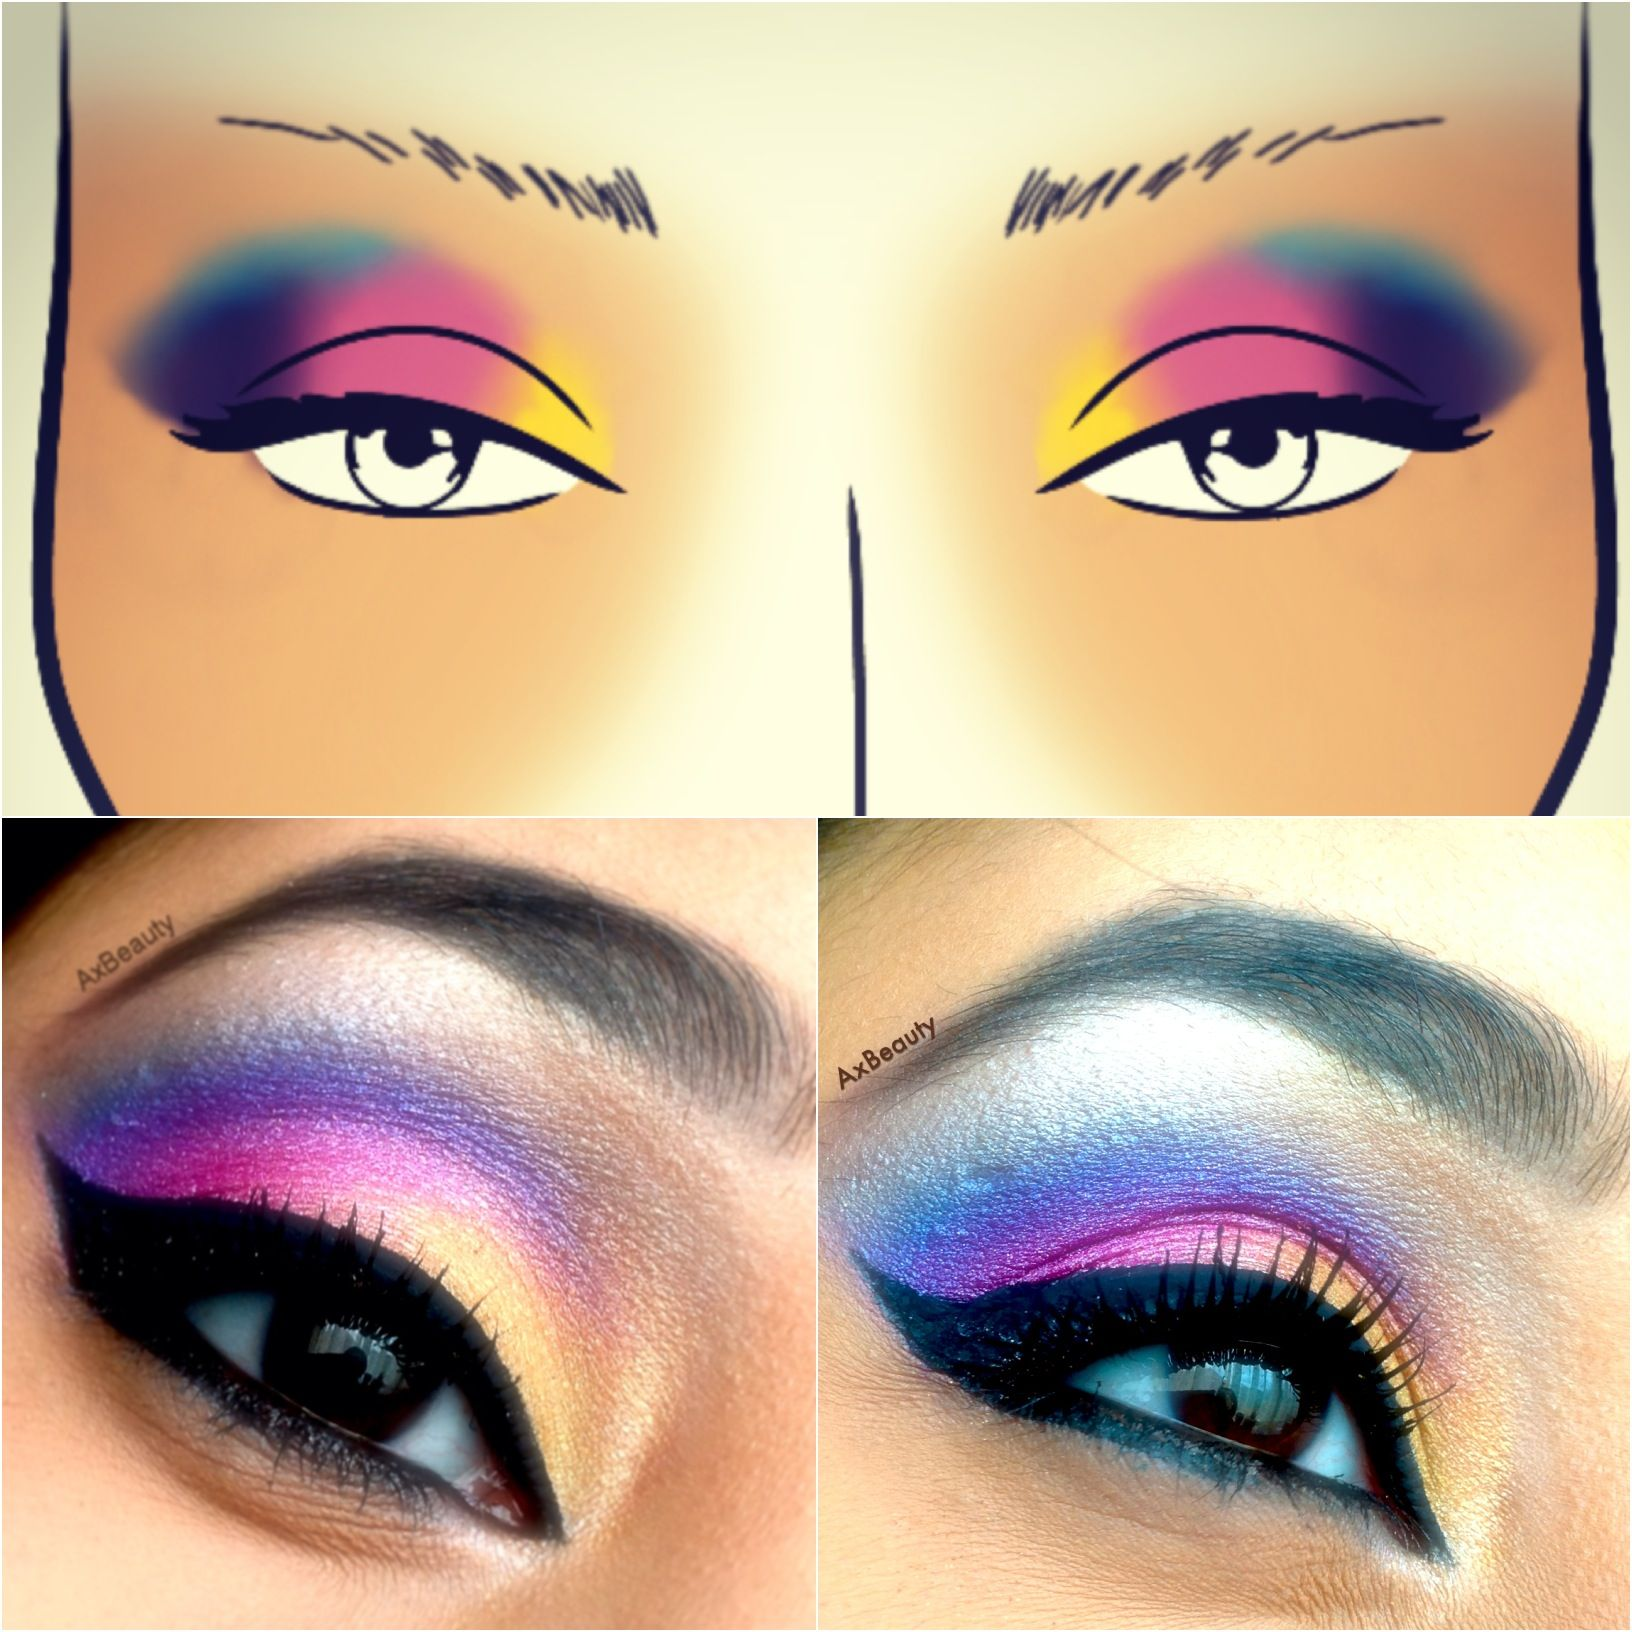 New makeup look EXOTIC. Using #facecharts to create beautiful makeup looks! Visit my blog to find a blank facechart for you to practice on! http://axbeautymua.blogspot.co.uk/2013/01/exotic.html